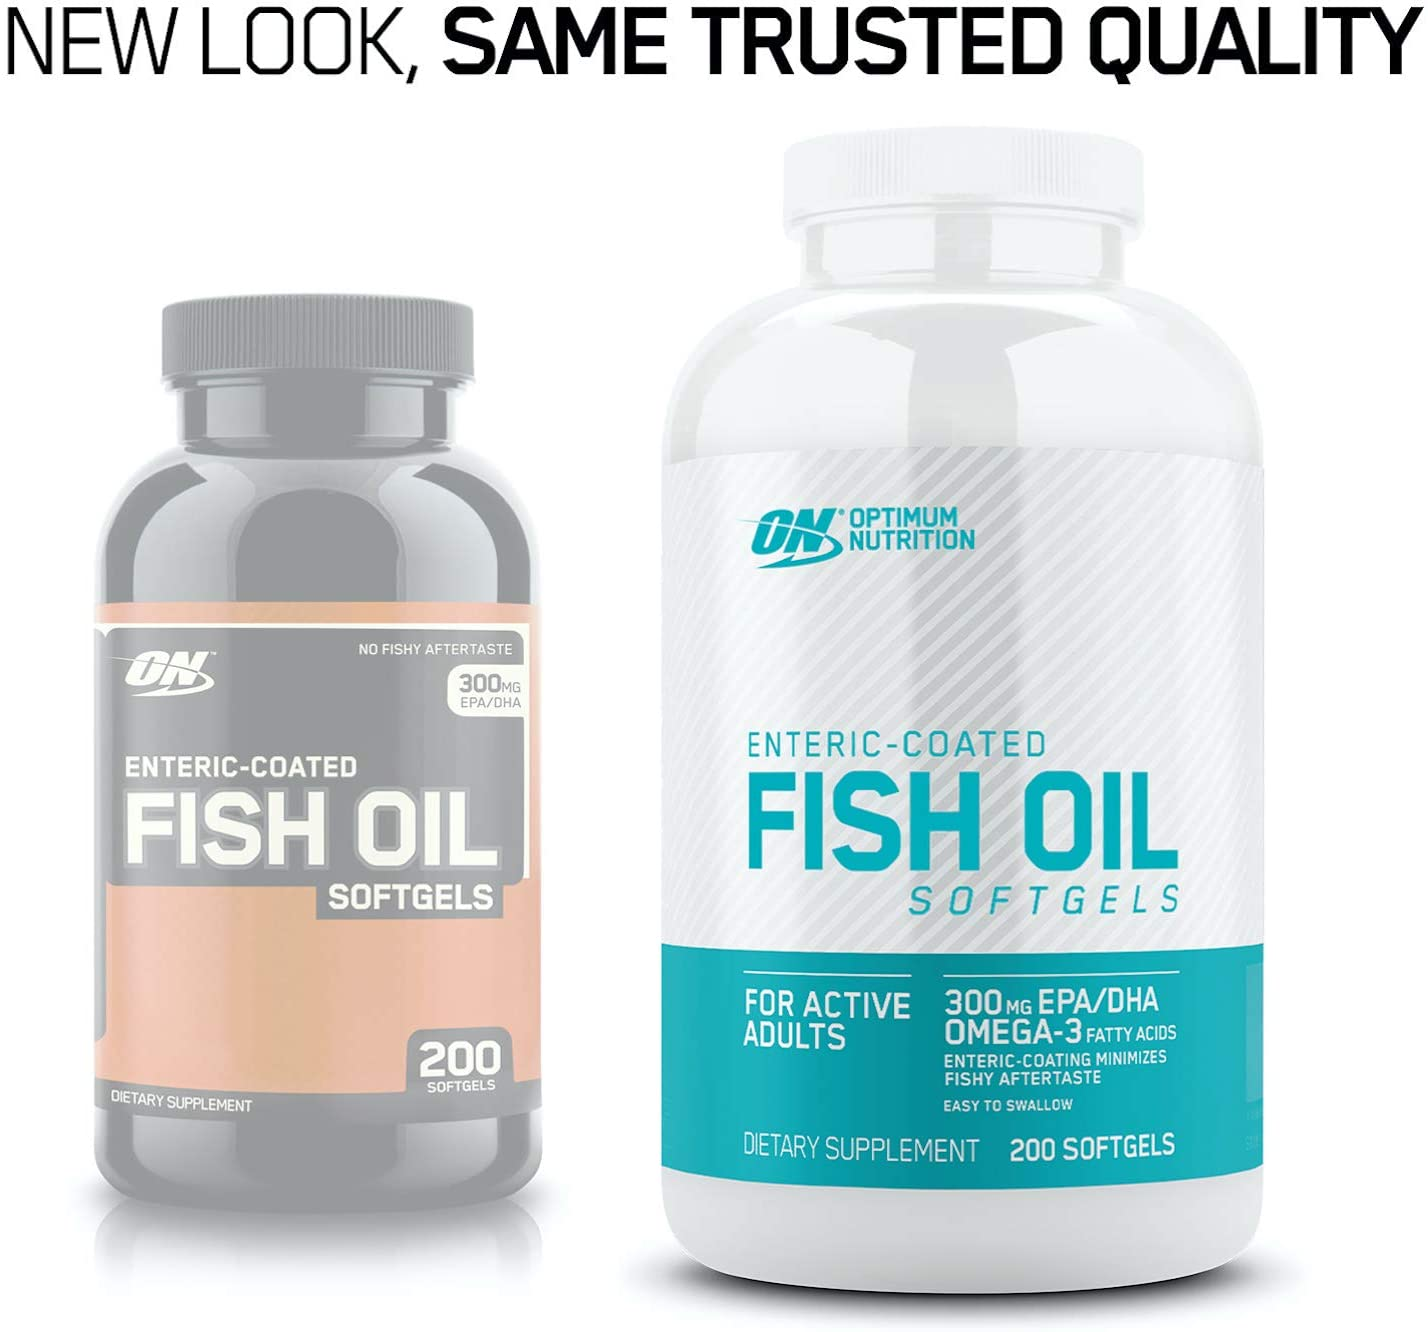 Amazon.com: Optimum Nutrition Omega 3 Fish Oil, 300MG, Brain Support Supplement: Health & Personal Care